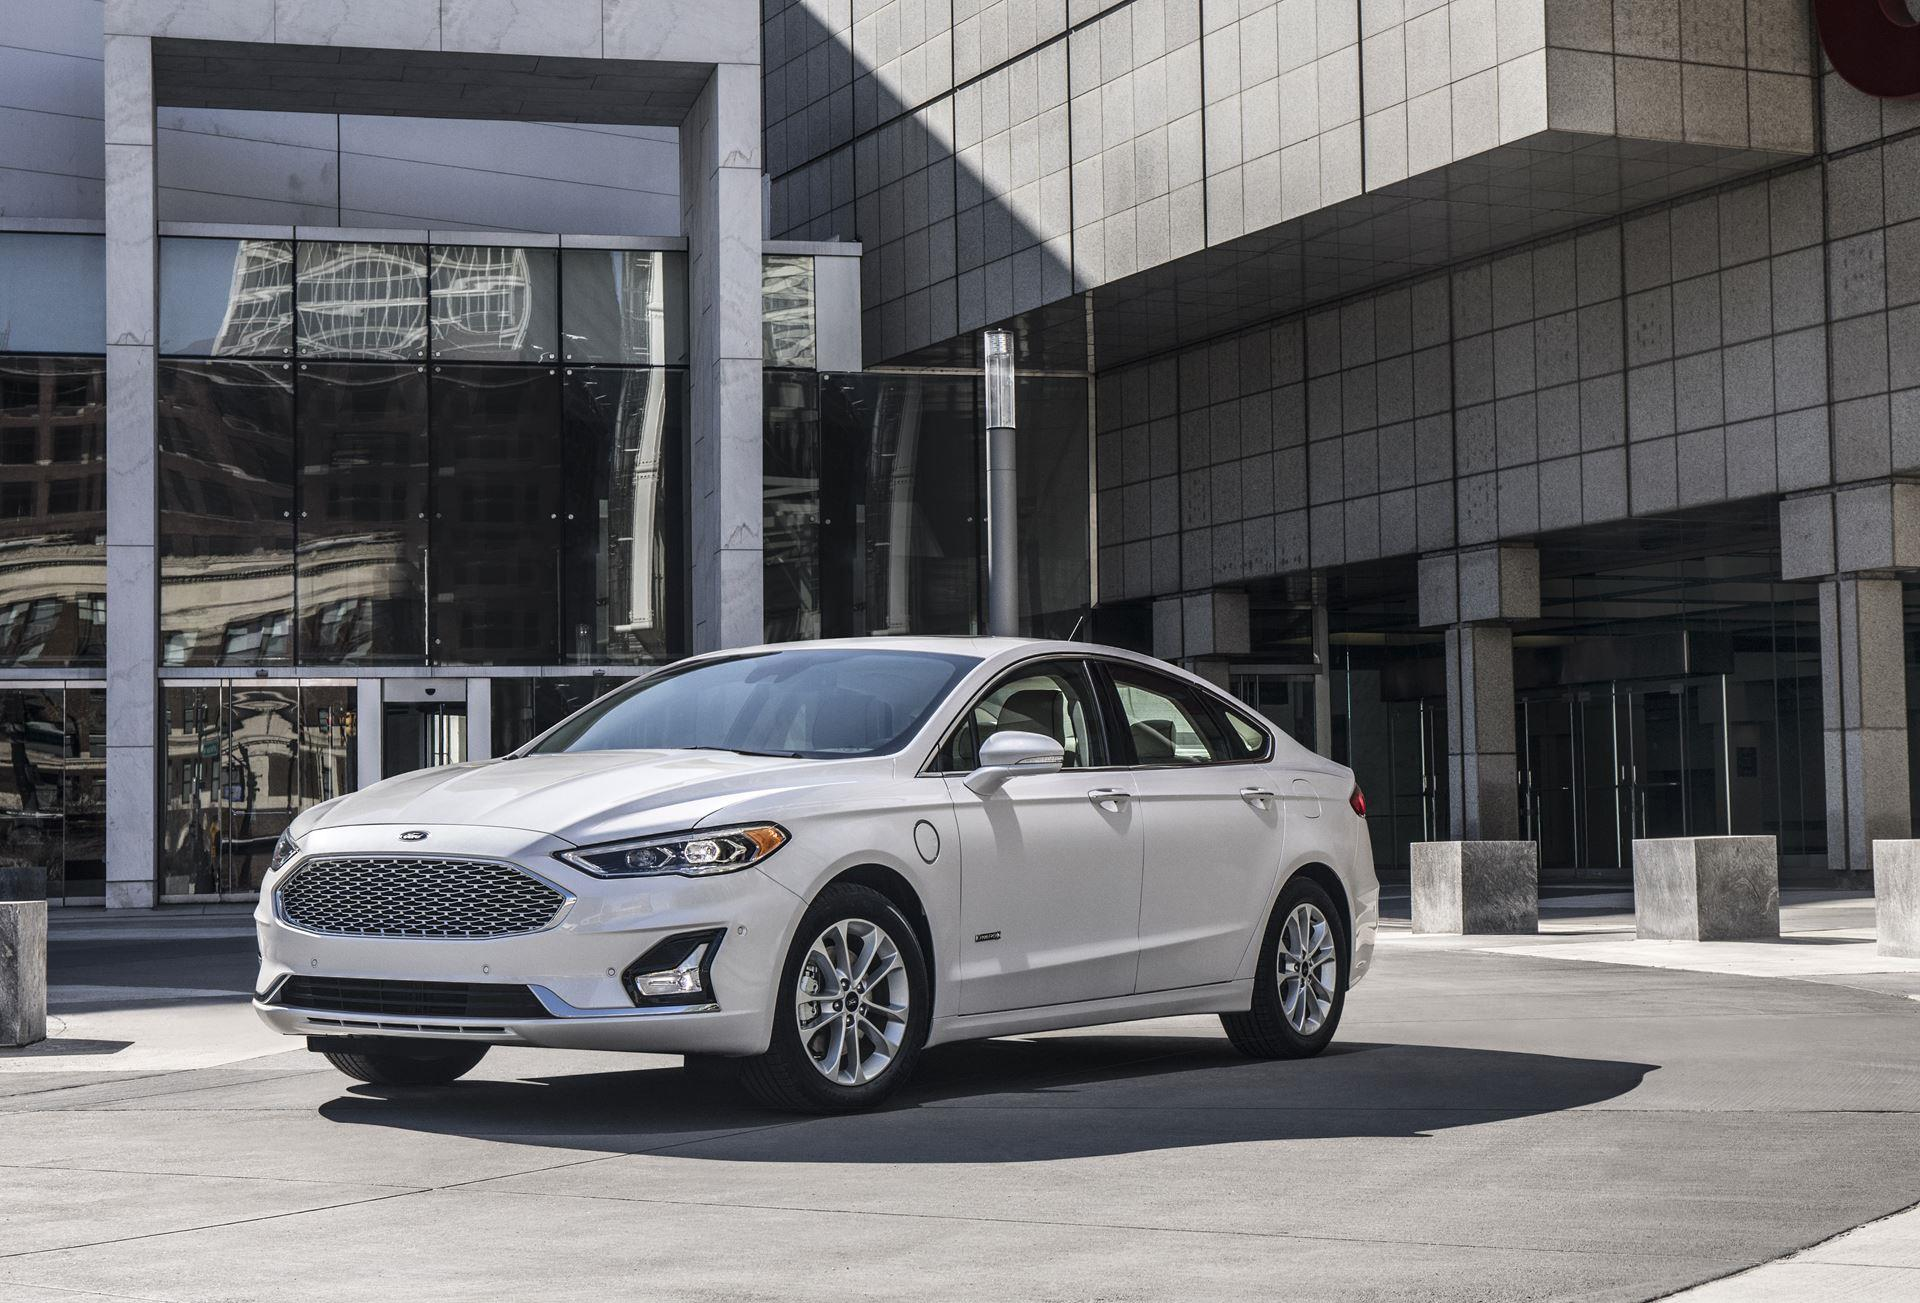 Ford Fusion photo